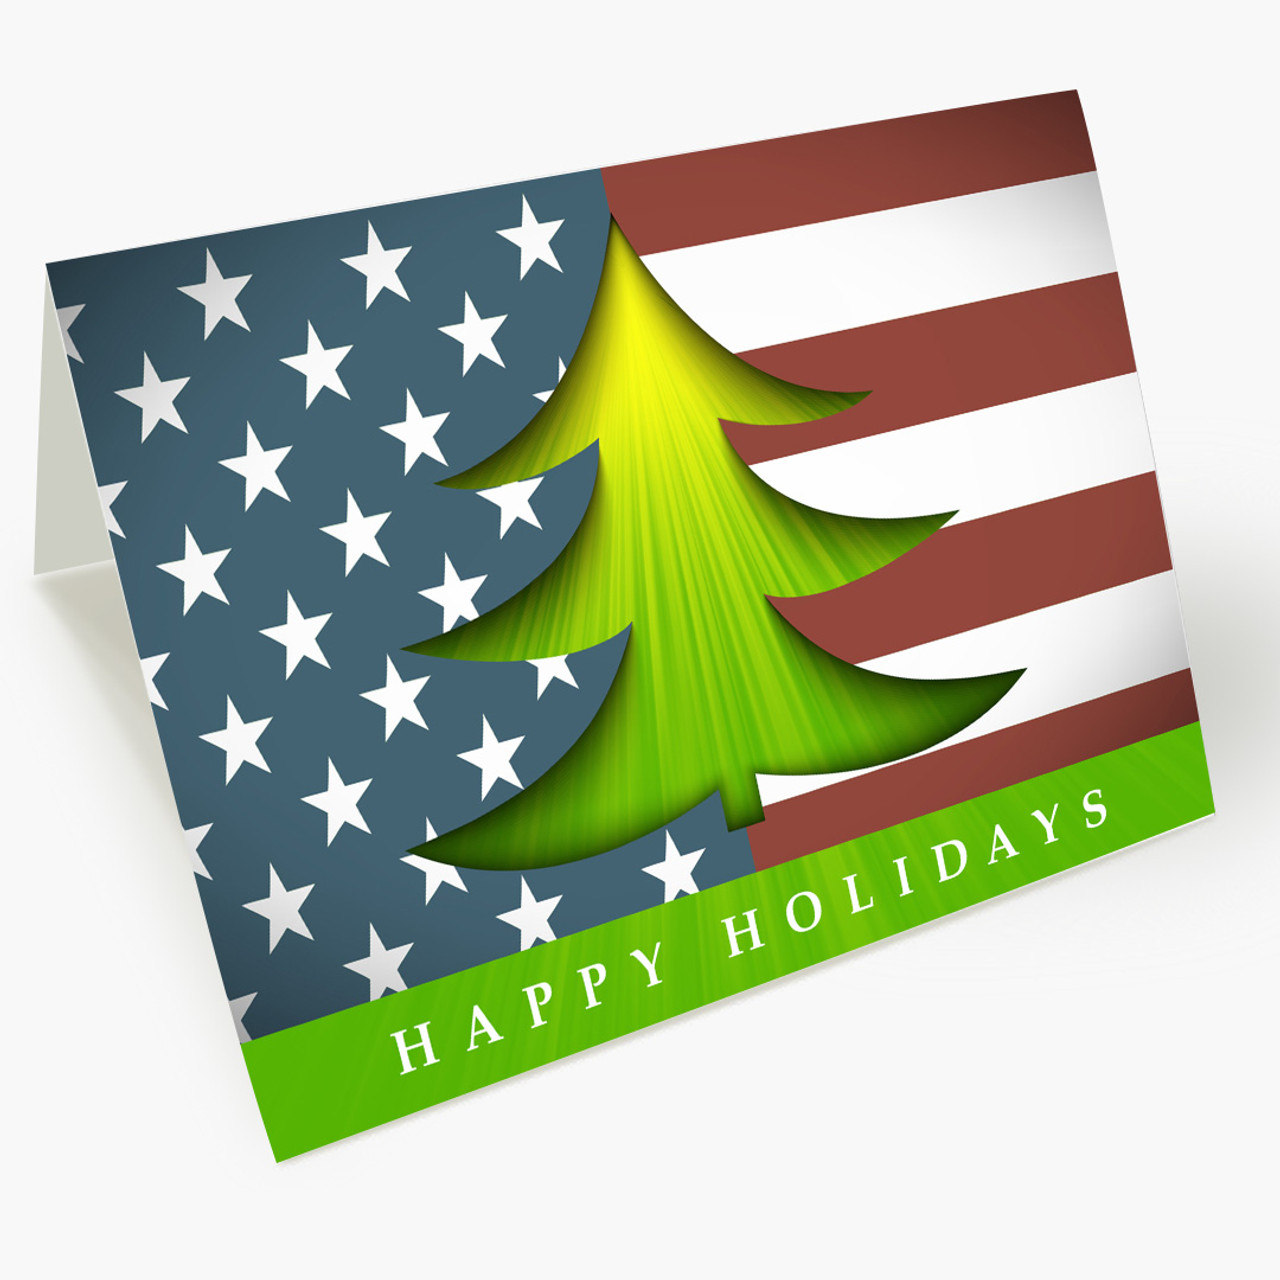 Stars and Stripes Greetings Christmas Card